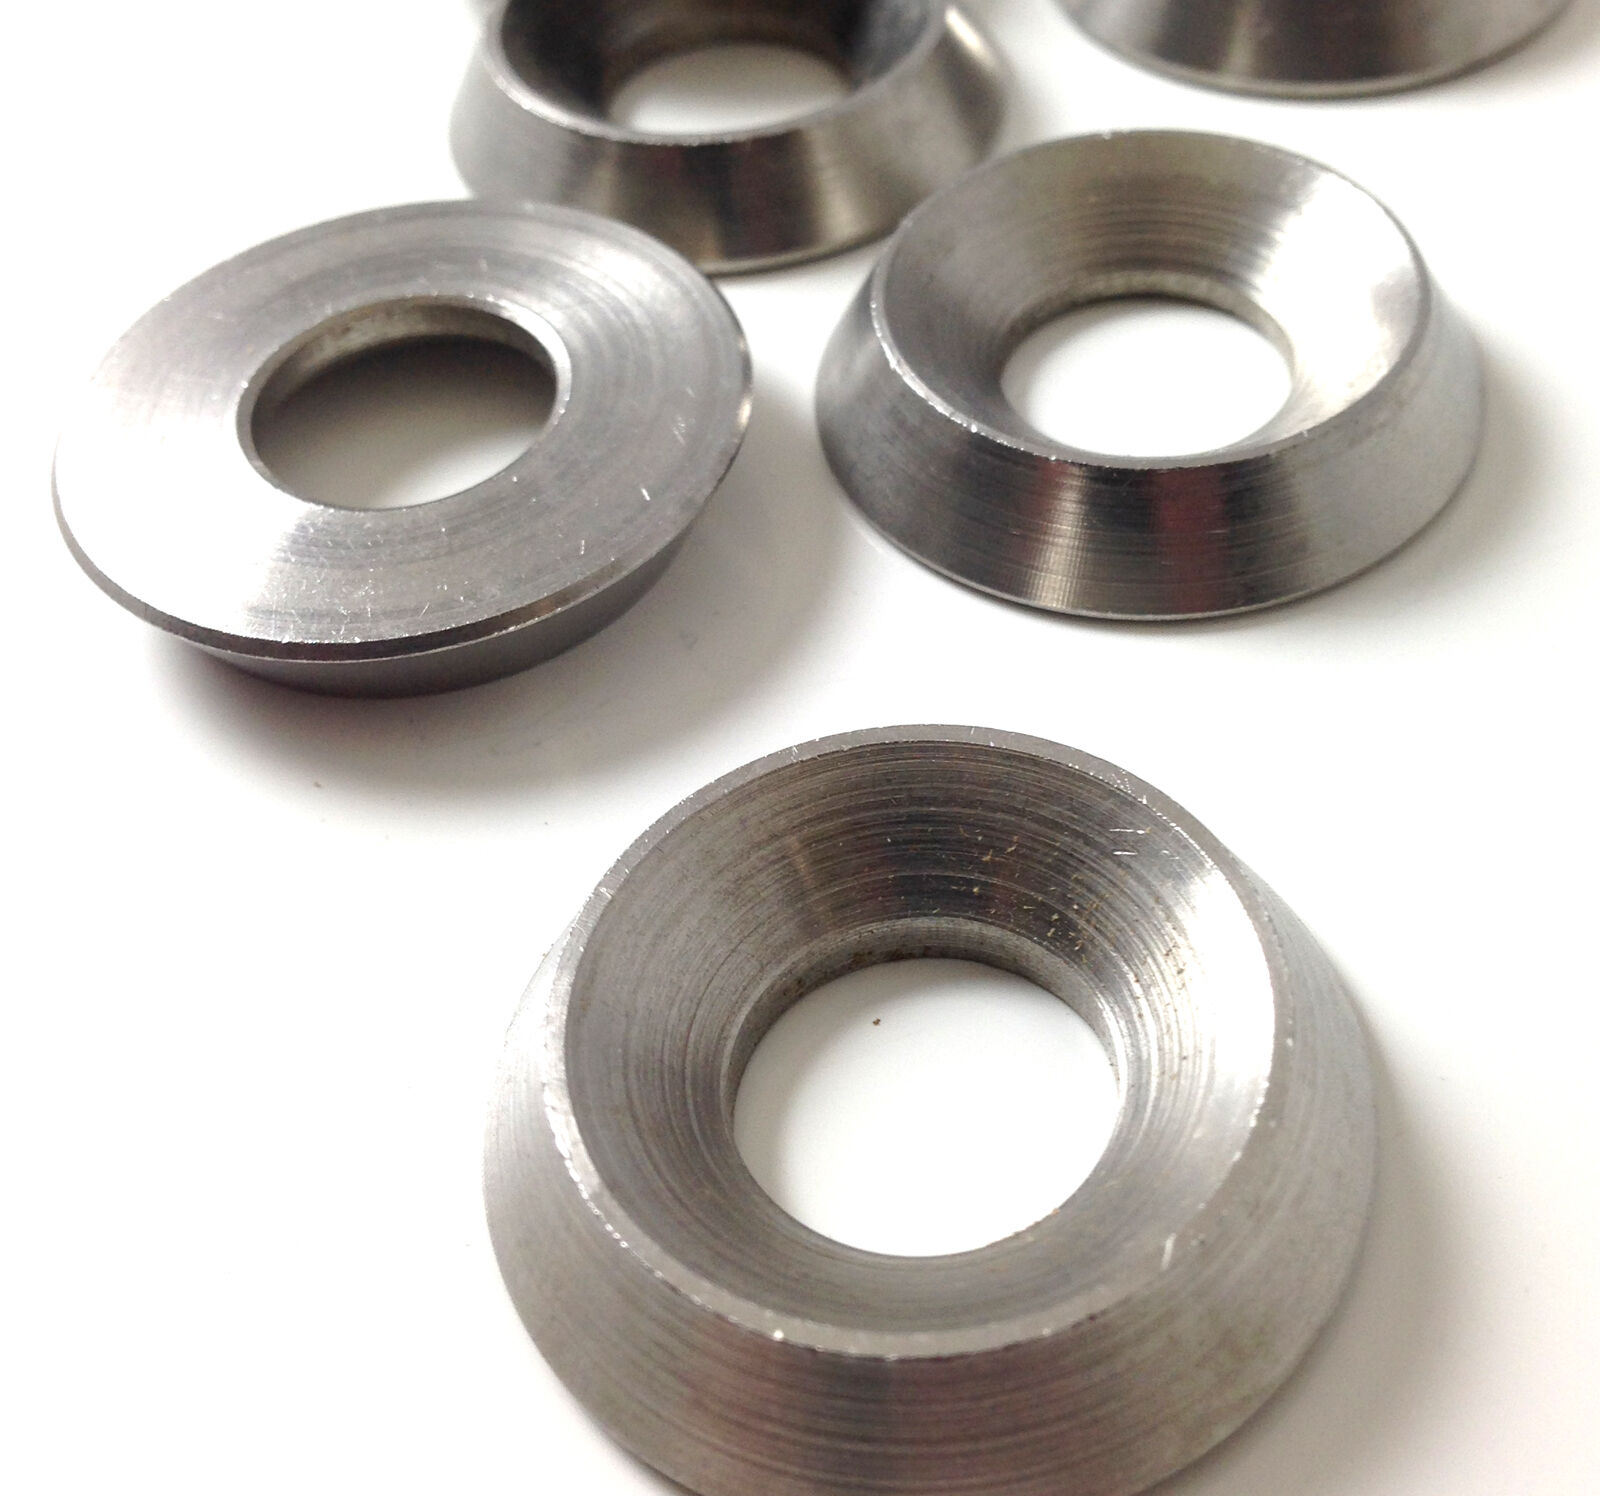 M12, A4 MARINE GRADE SOLID STAINLESS STEEL TURNED FULL BODY SCREW CUP WASHERS